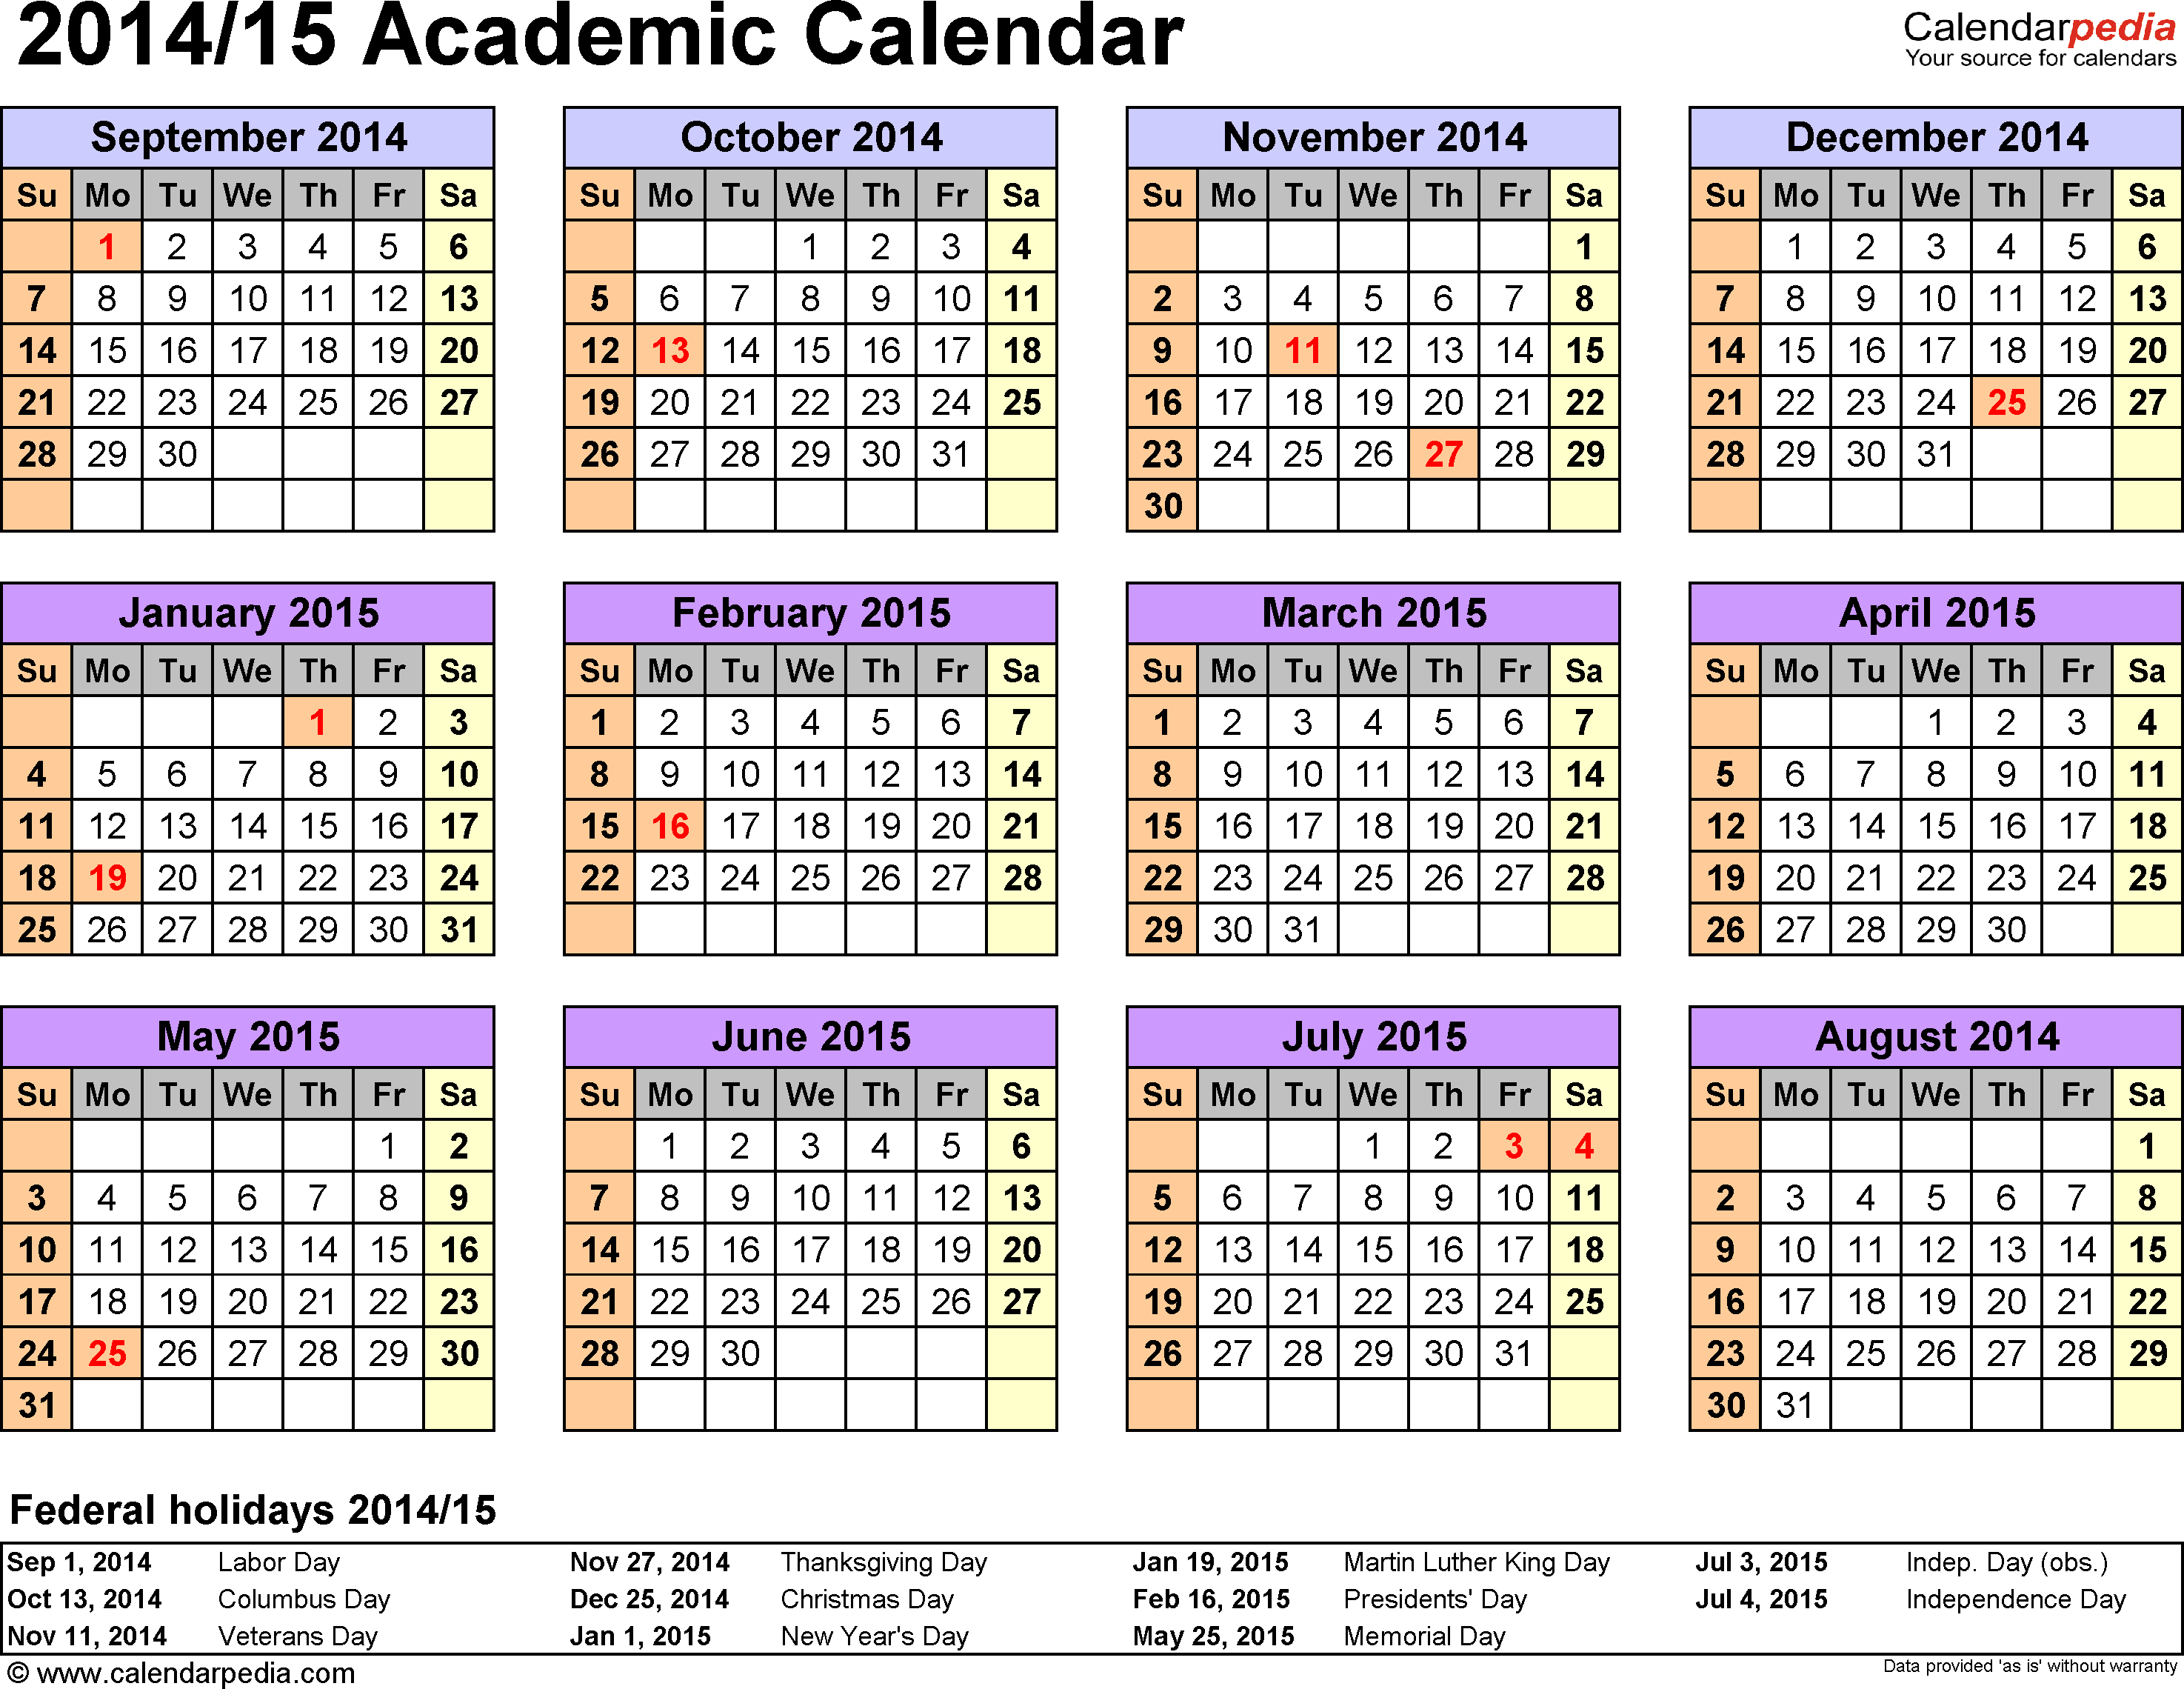 college academic calendar January term 2018 january 2 classes begin drop/add ends at 11:59pm january 3, census date for reporting roster verification begins january 4, roster verification ends at 9:00am january 8, last day to withdraw from a course without academic penalty january 12, classes end january 15, grades due by 9:00am.